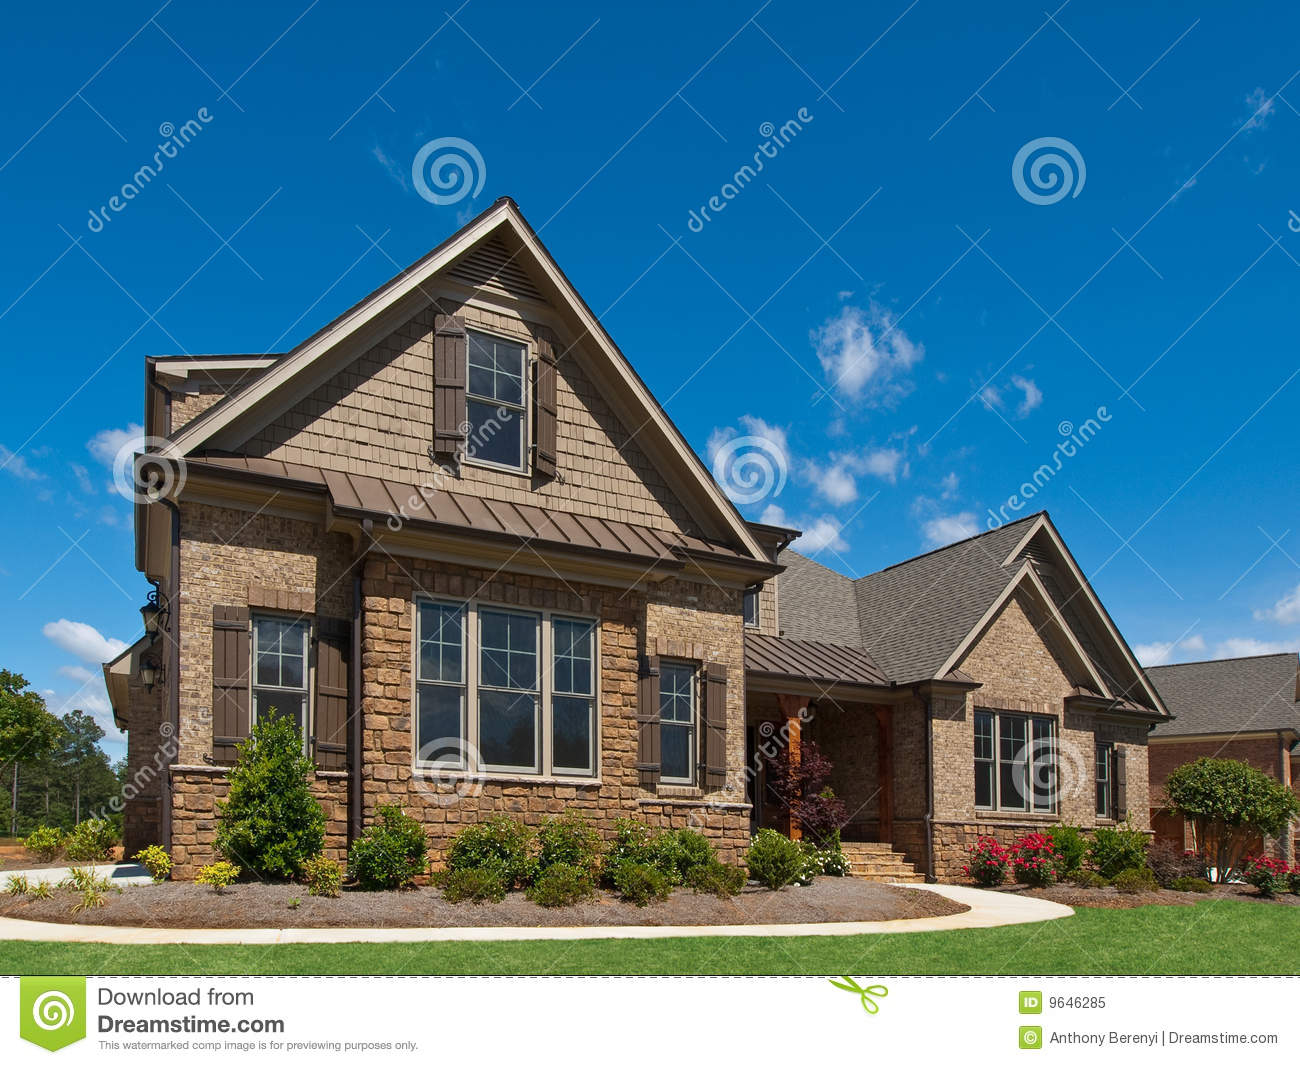 Model luxury home exterior angle view sidewalk stock image for Luxury home exterior